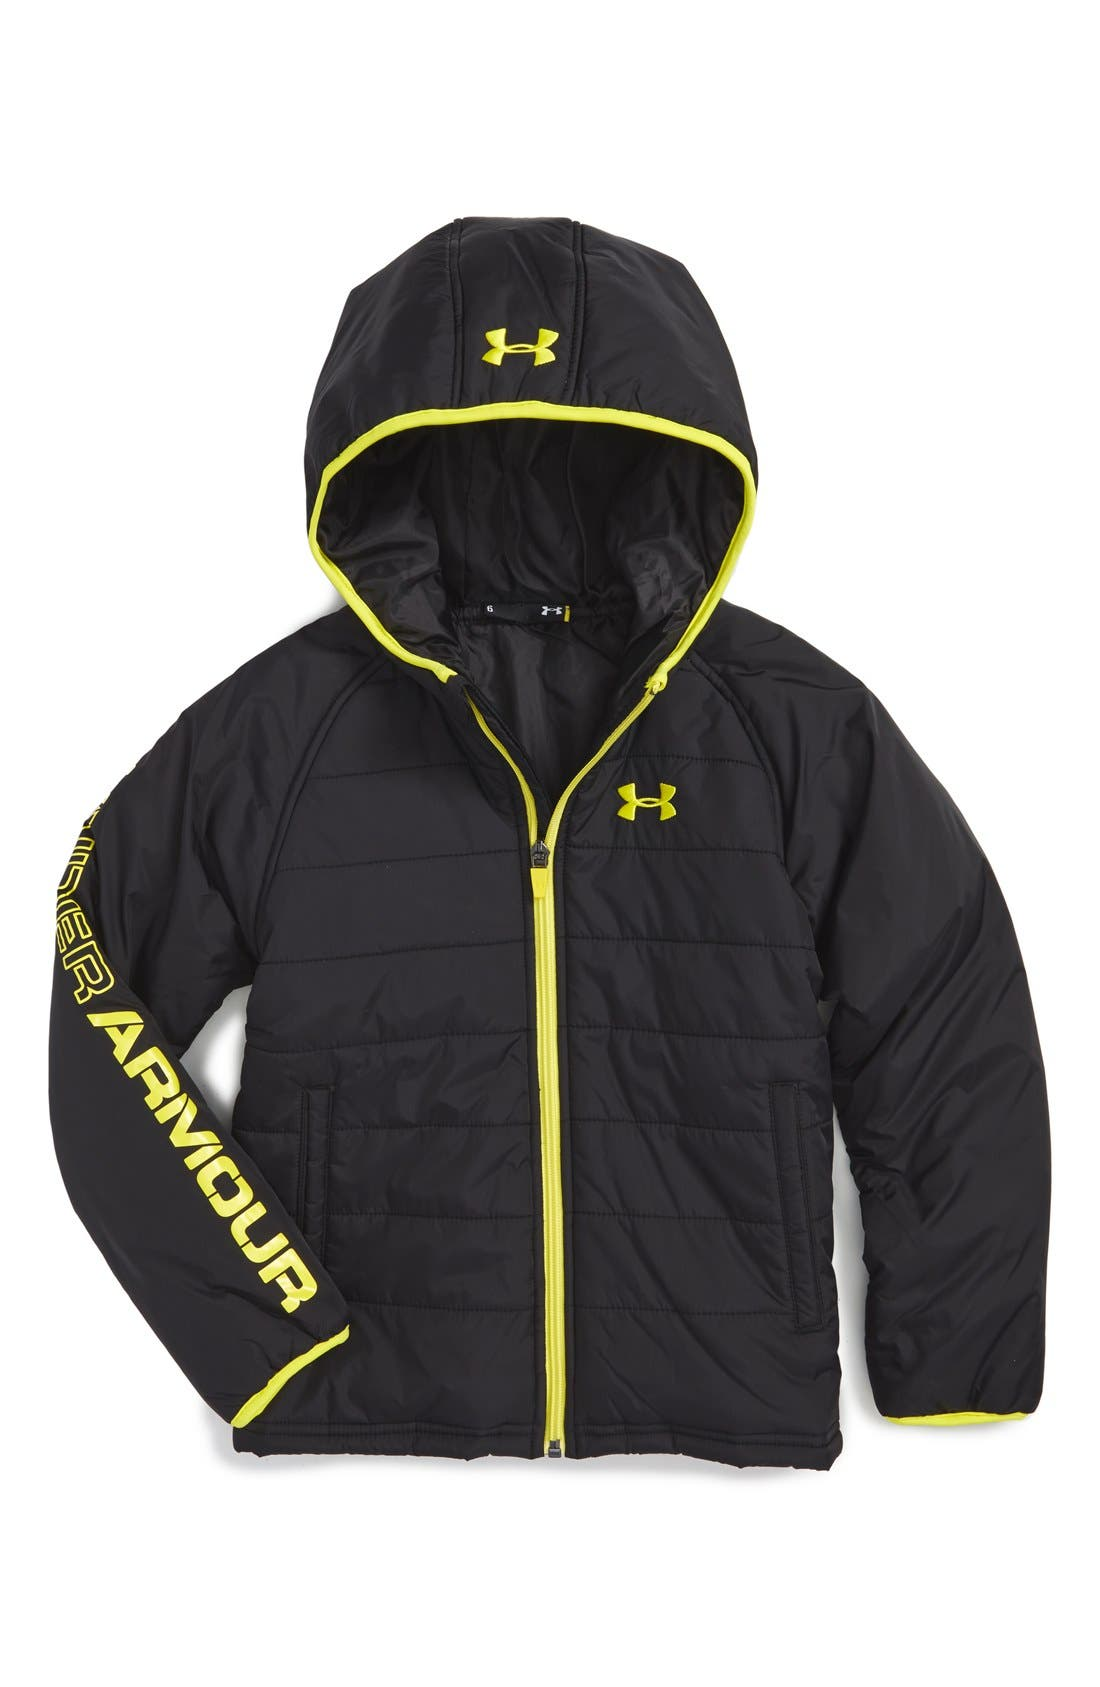 UNDER ARMOUR 'Hudson' Quilted Jacket, Main, color, 001